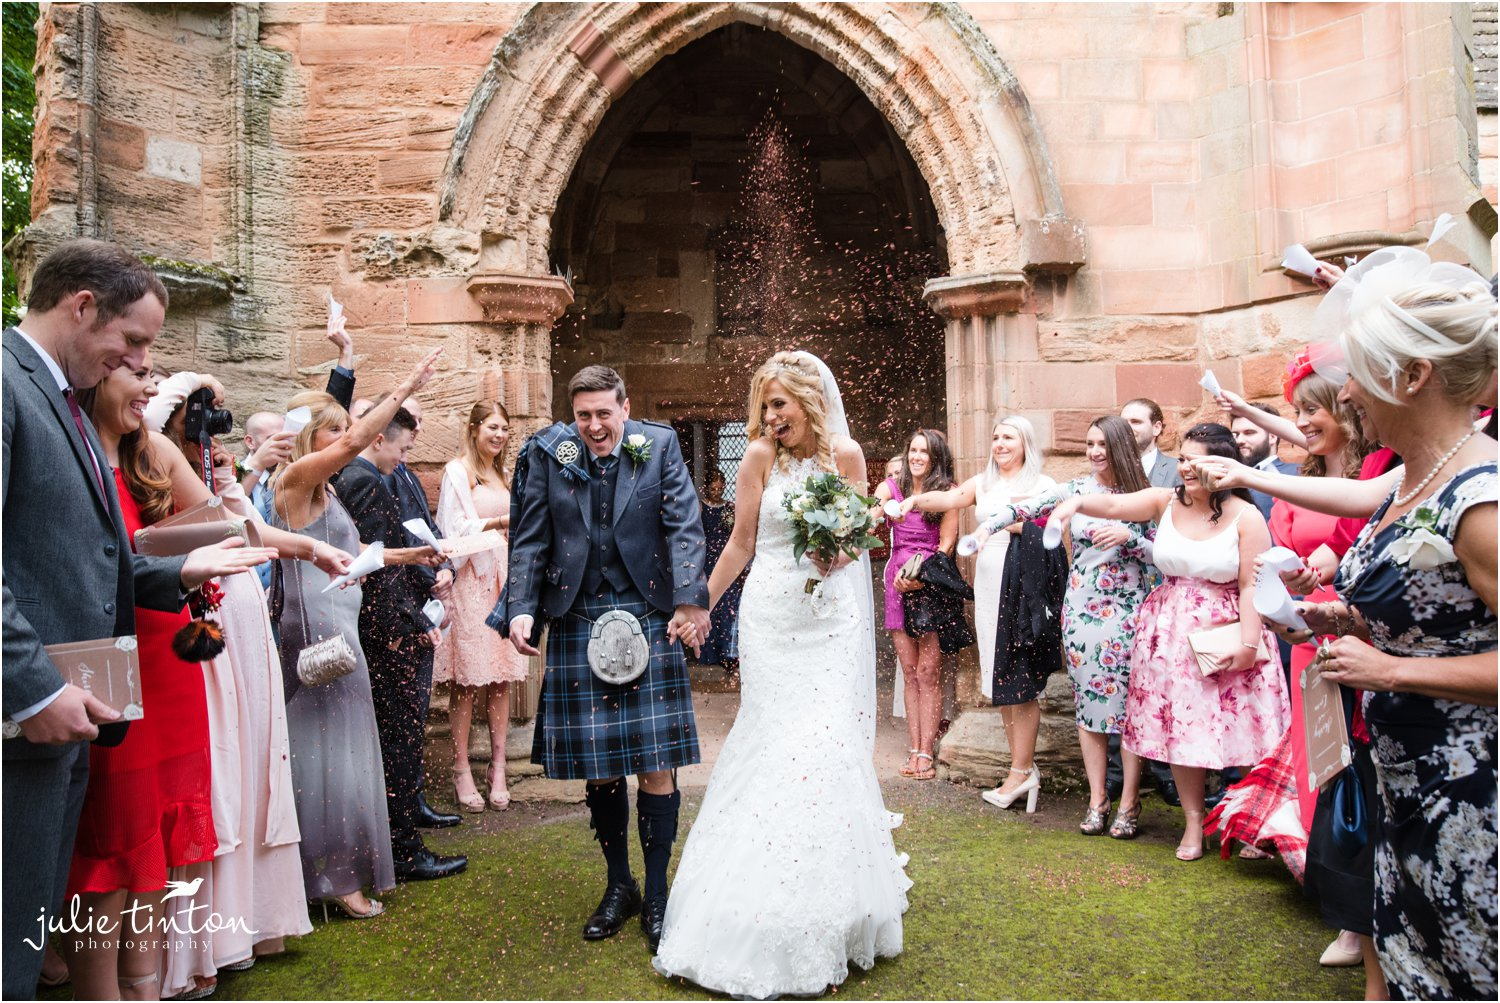 Bride and Groom outside church with confetti throw with guests